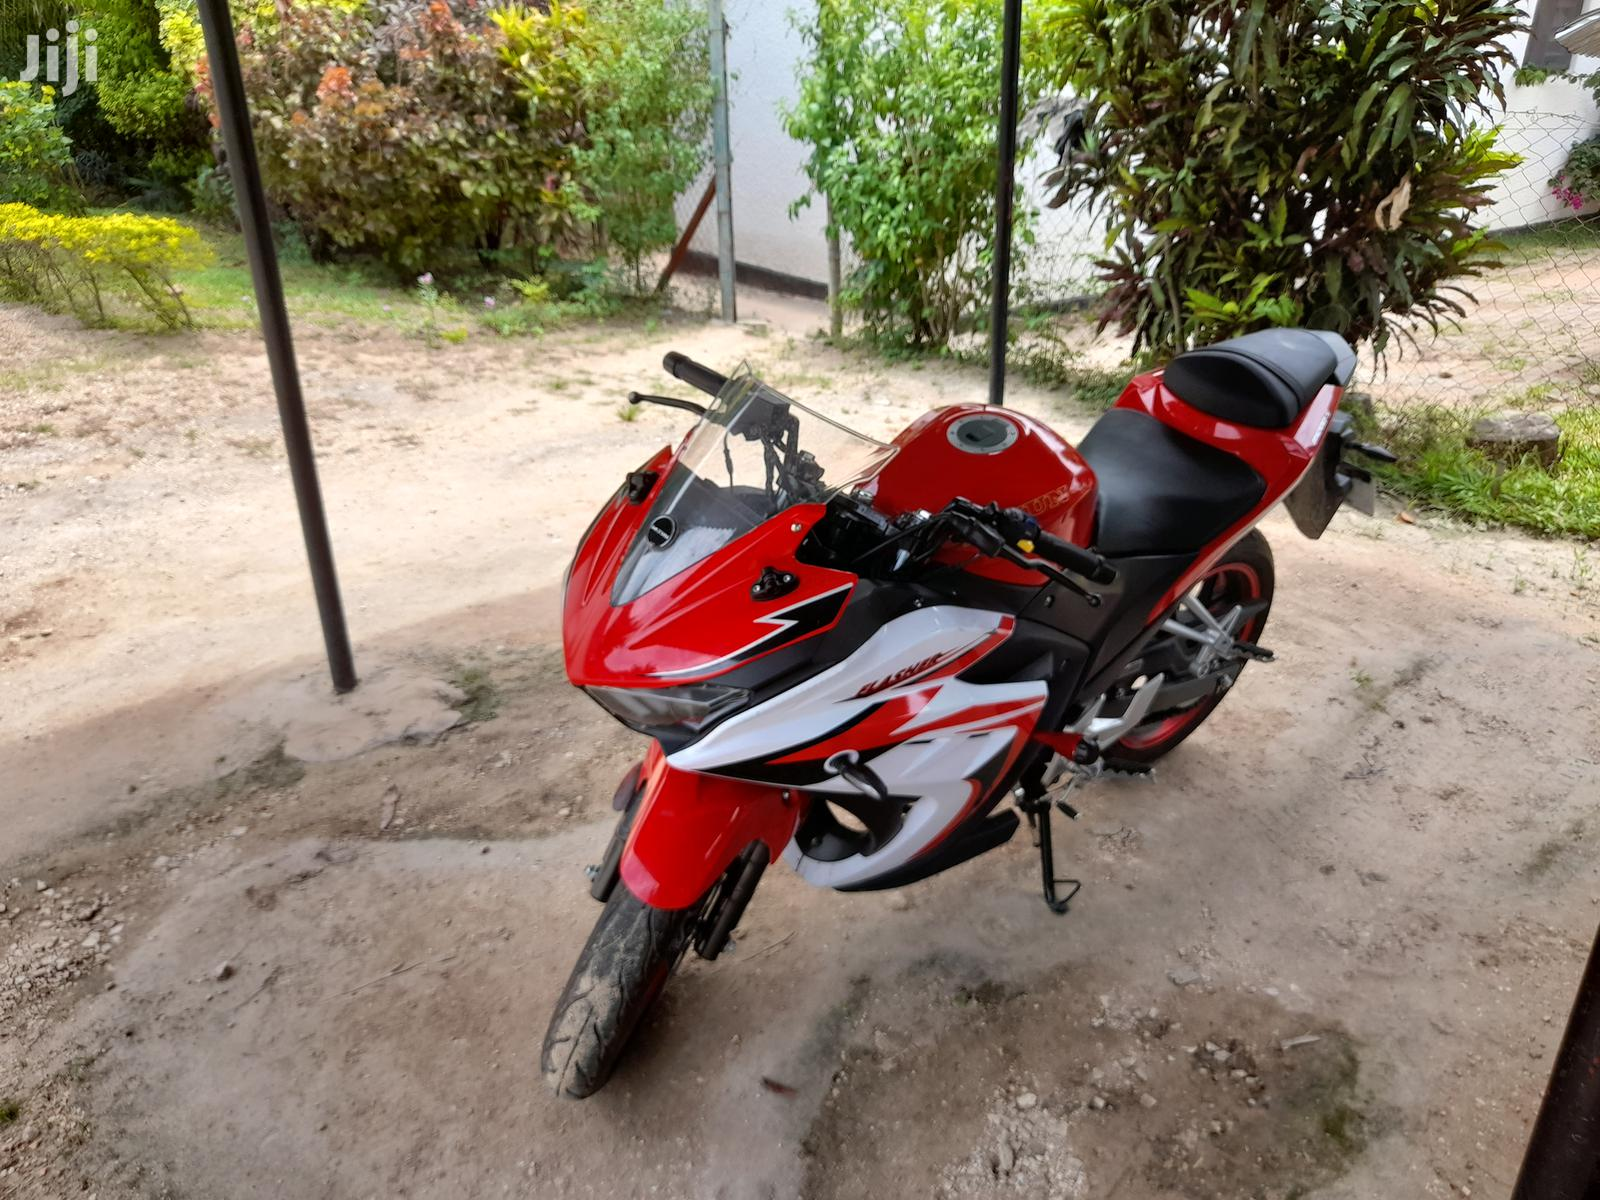 Archive: Motorcycle 2019 Red